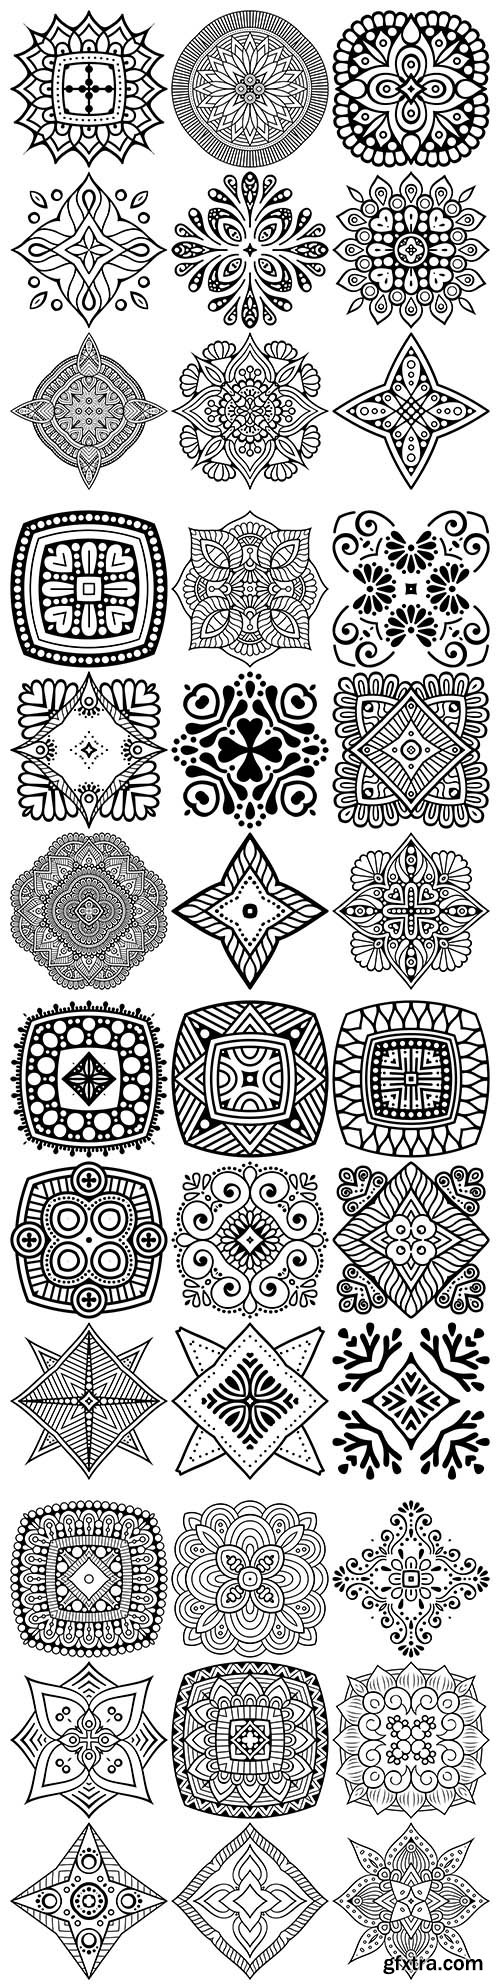 Mandala set black ethnic drawing design